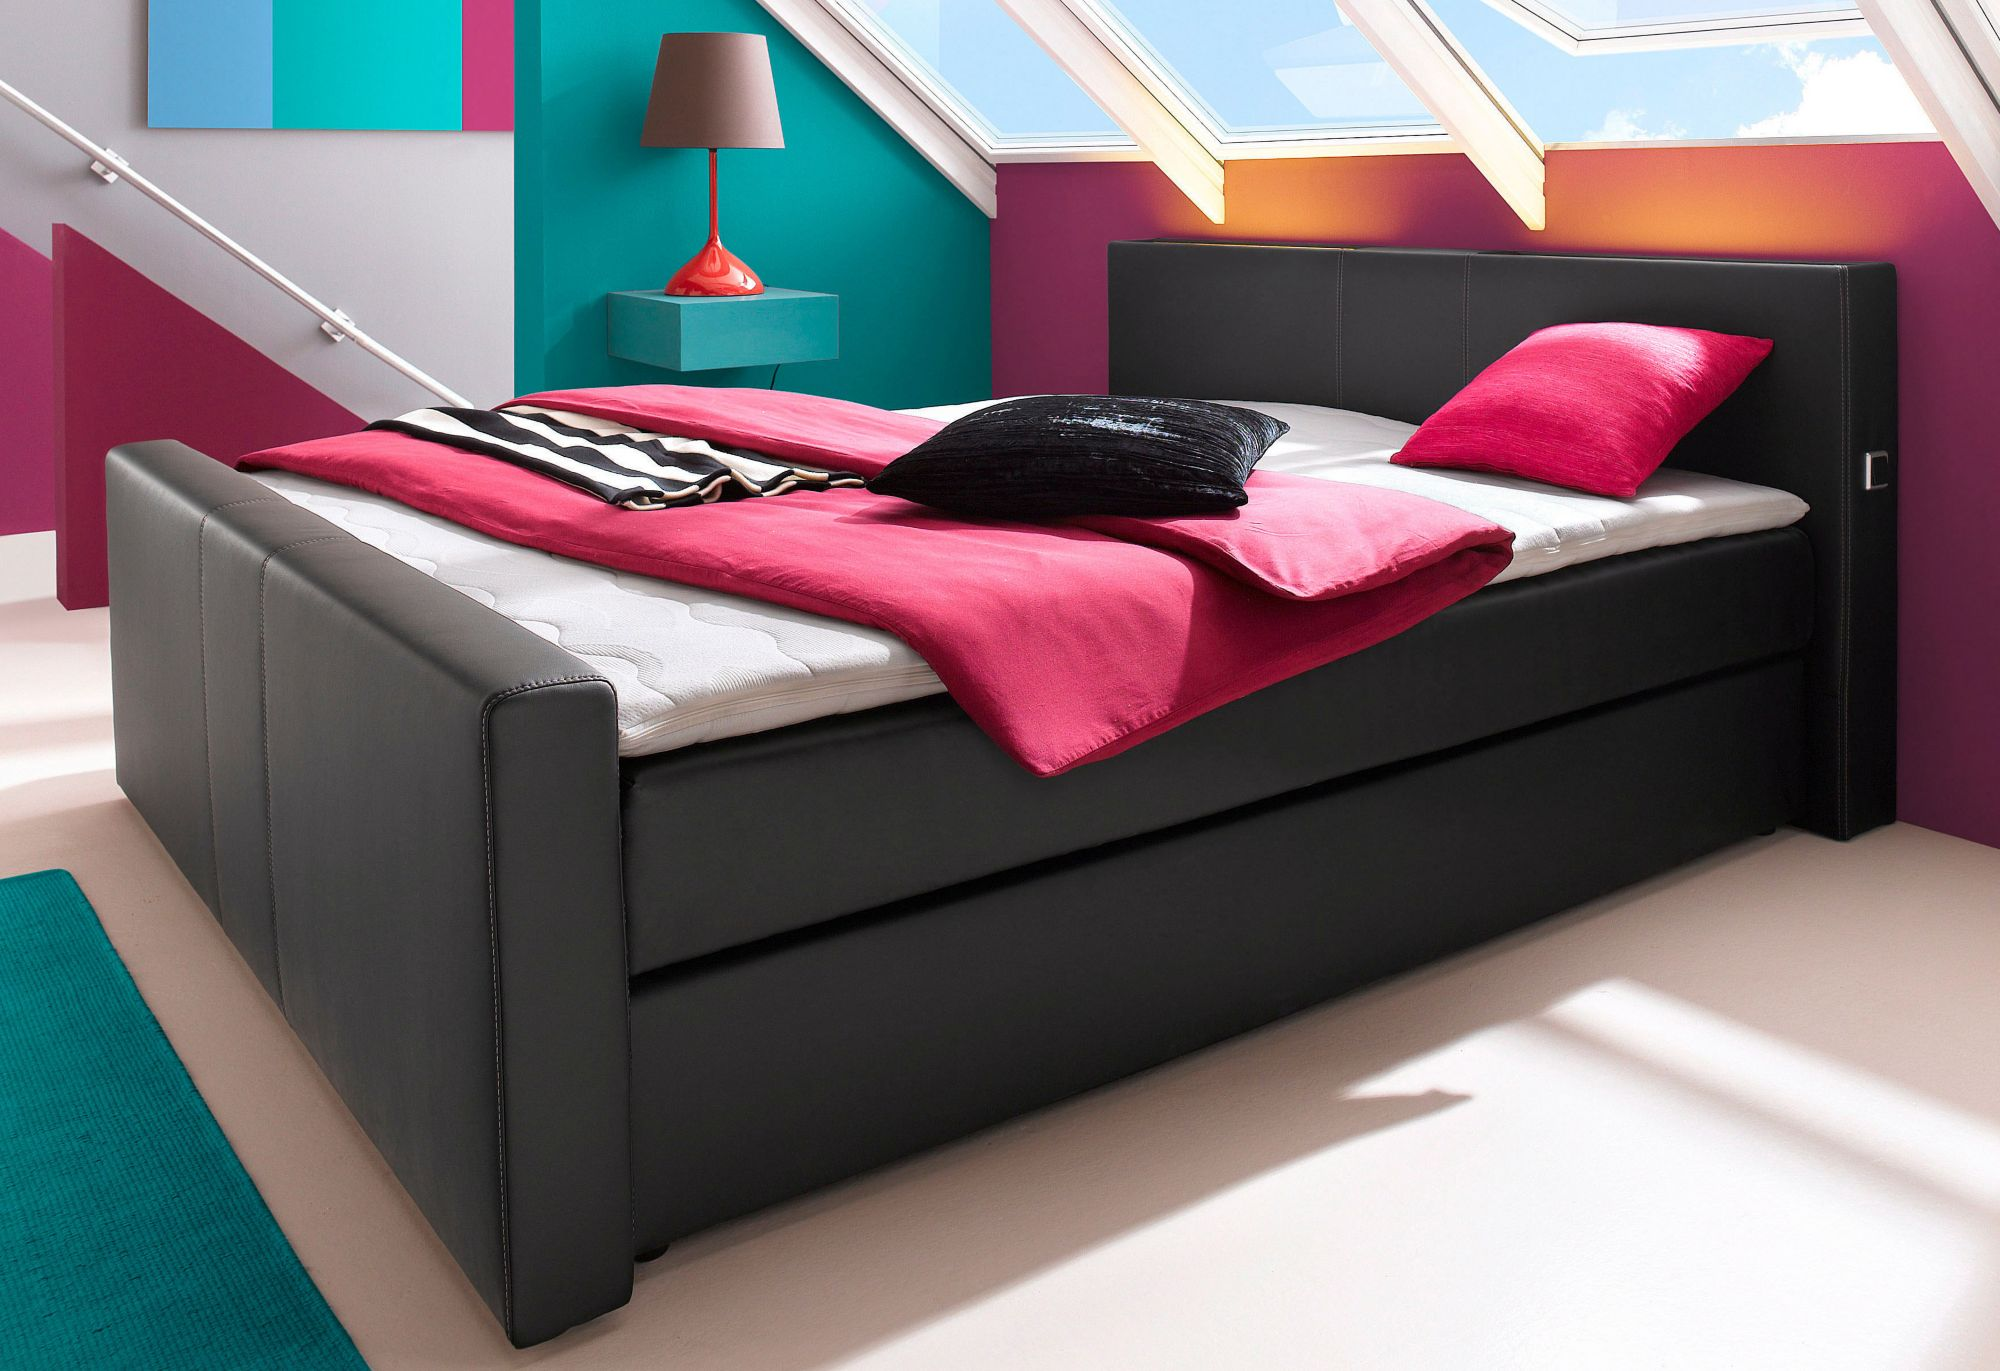 inosign boxspring bett kopfteilh he 90 5 cm schwab versand boxspringbetten ohne bettkasten. Black Bedroom Furniture Sets. Home Design Ideas